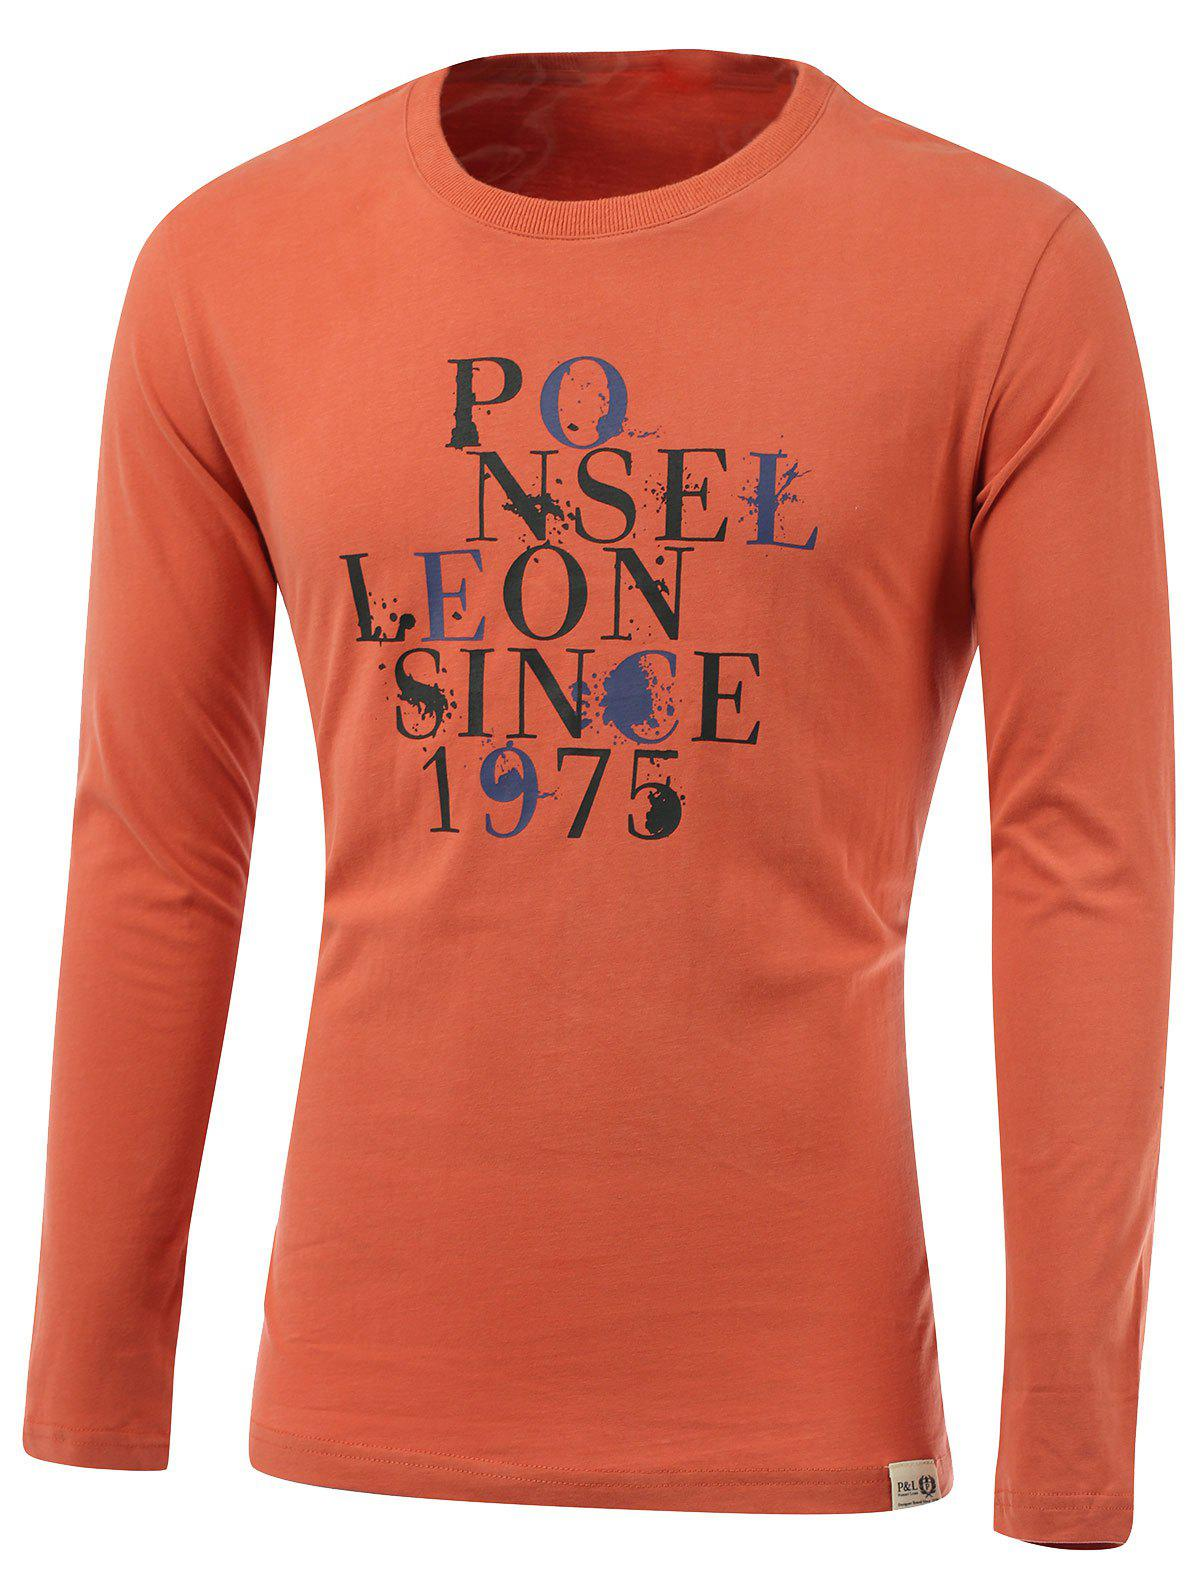 Splash-Ink Letter Print Round Neck Long Sleeve T-Shirt - ORANGE M